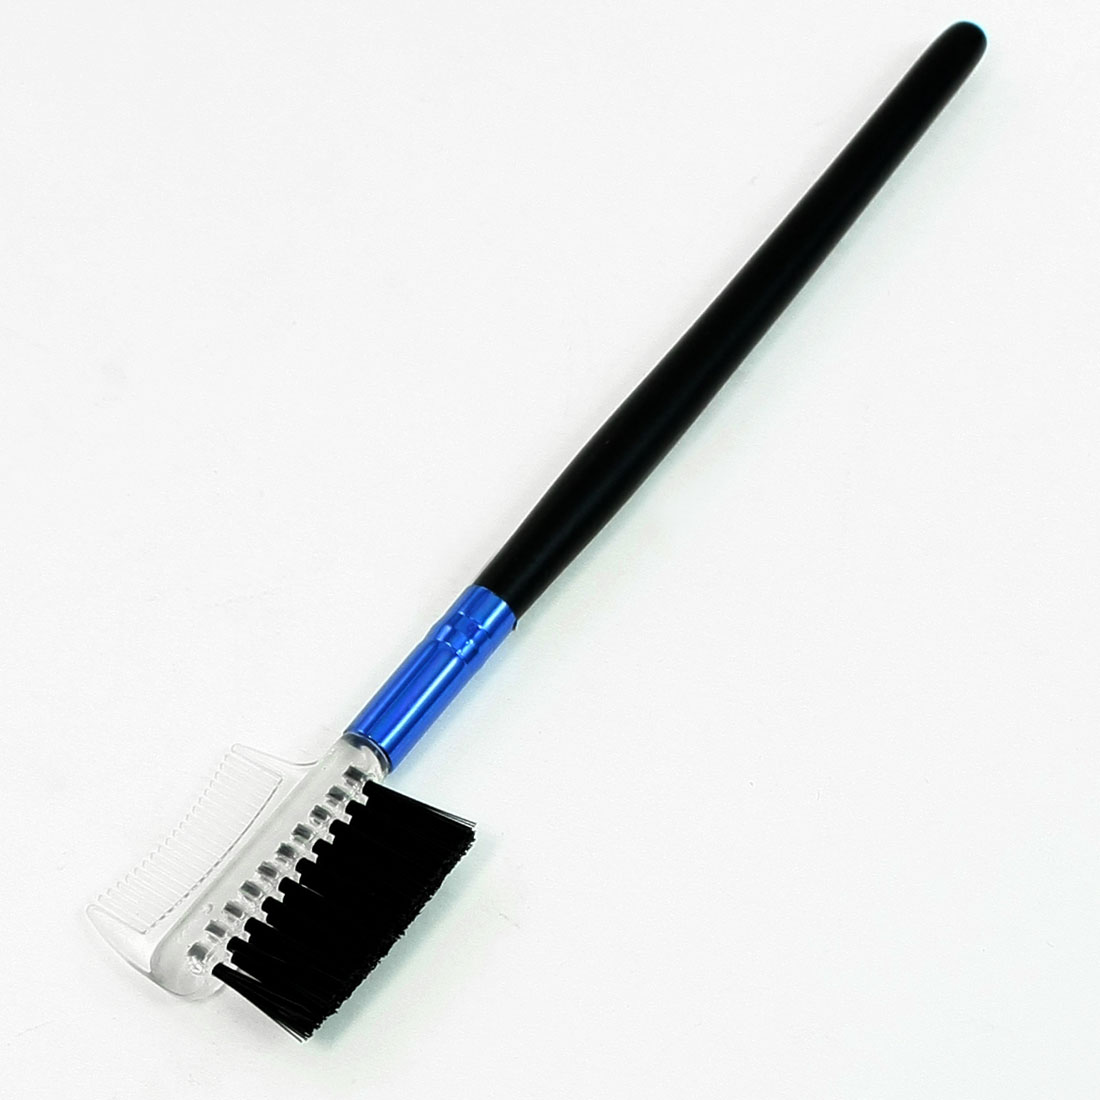 Lady Cosmetic Beauty Tool Black Plastic Handle Eyelash Eyebrow Comb Brush